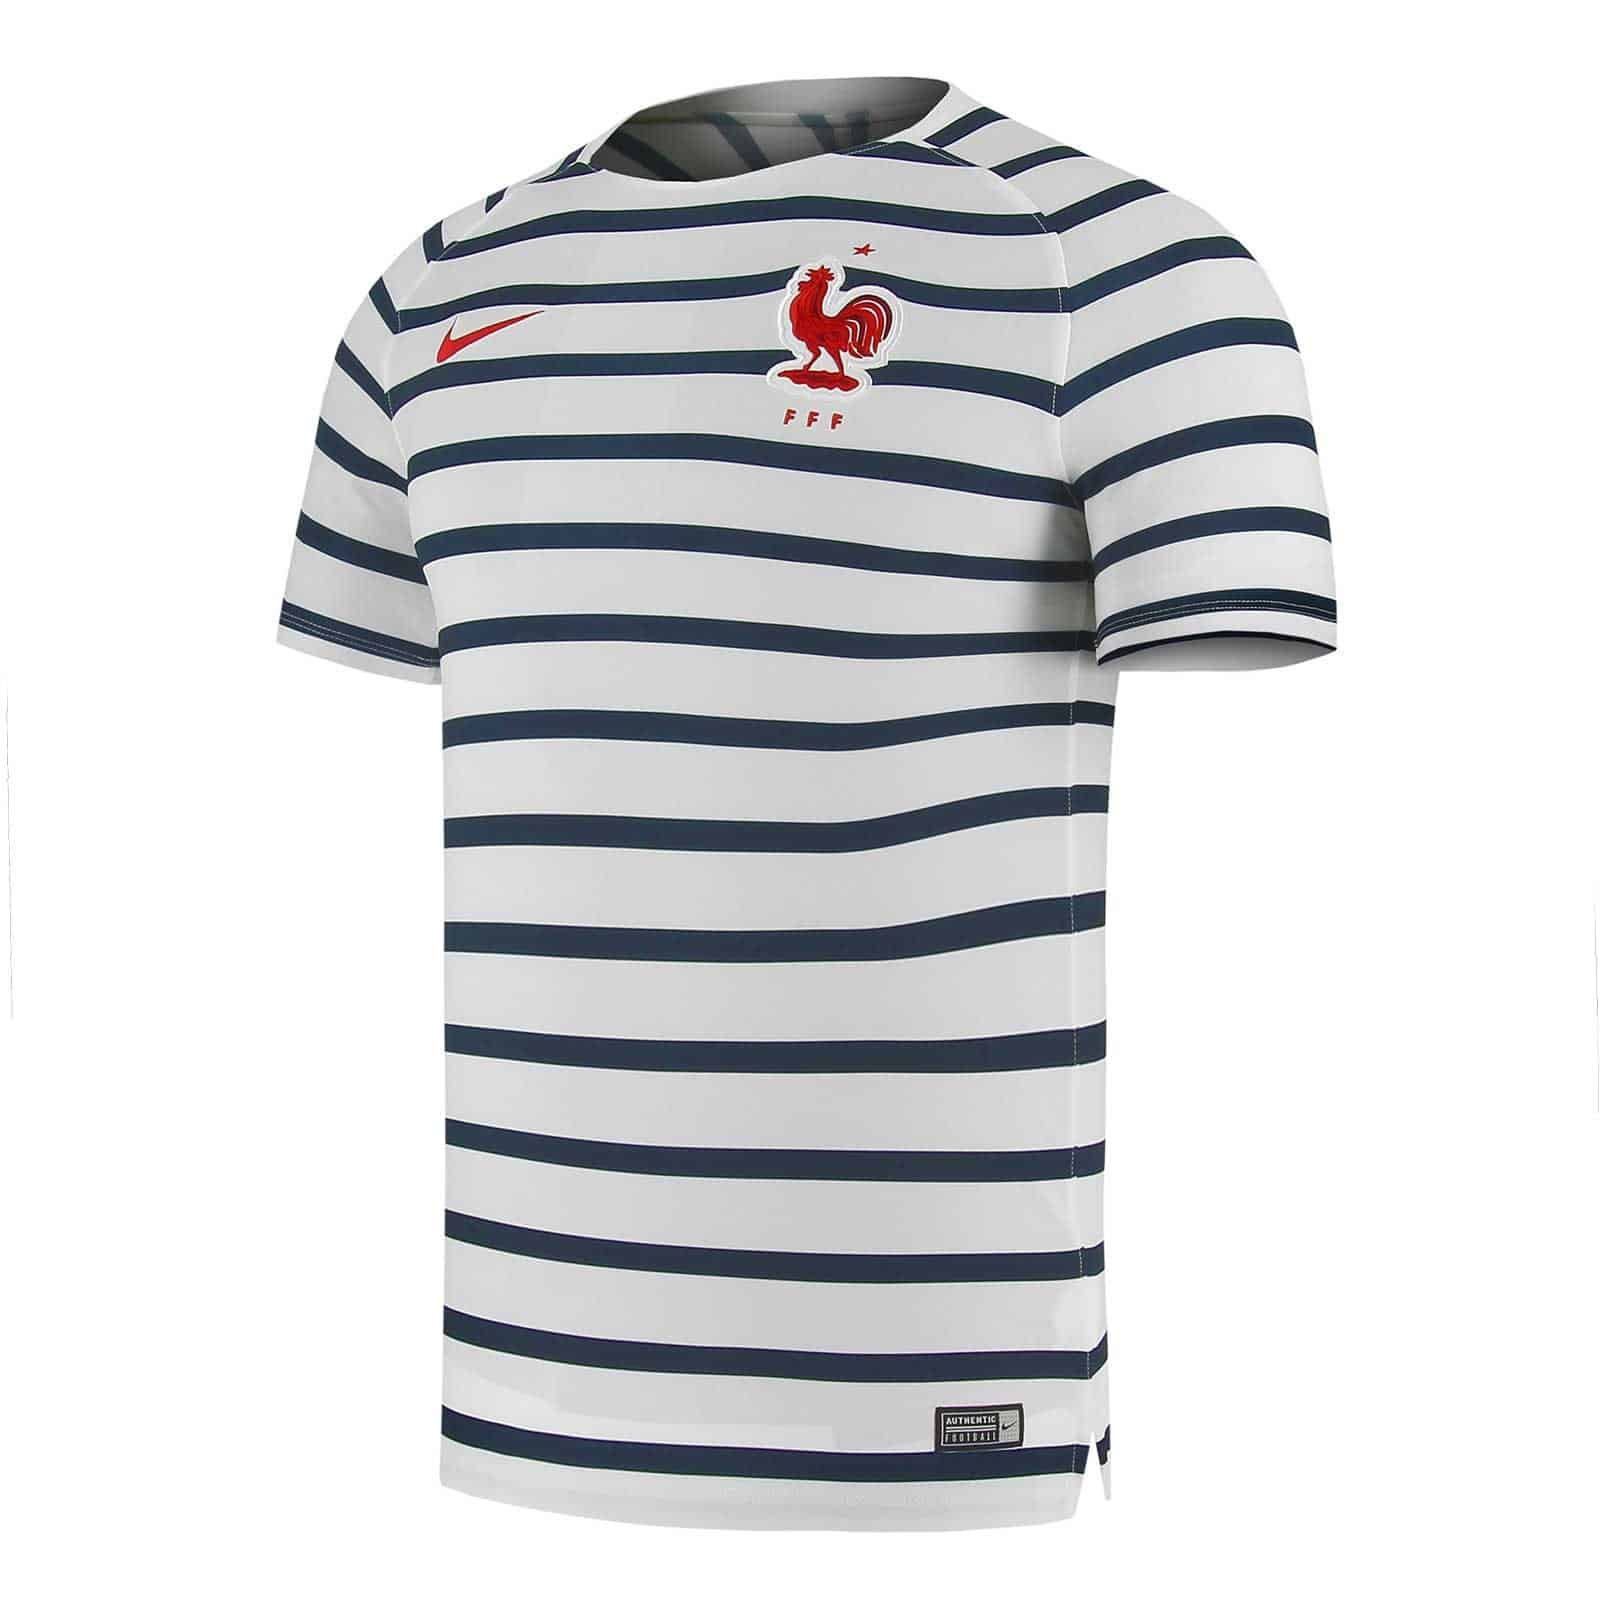 Sports Maillot • Shop Fff Equipe De France Co Nike Marinière wZF4w